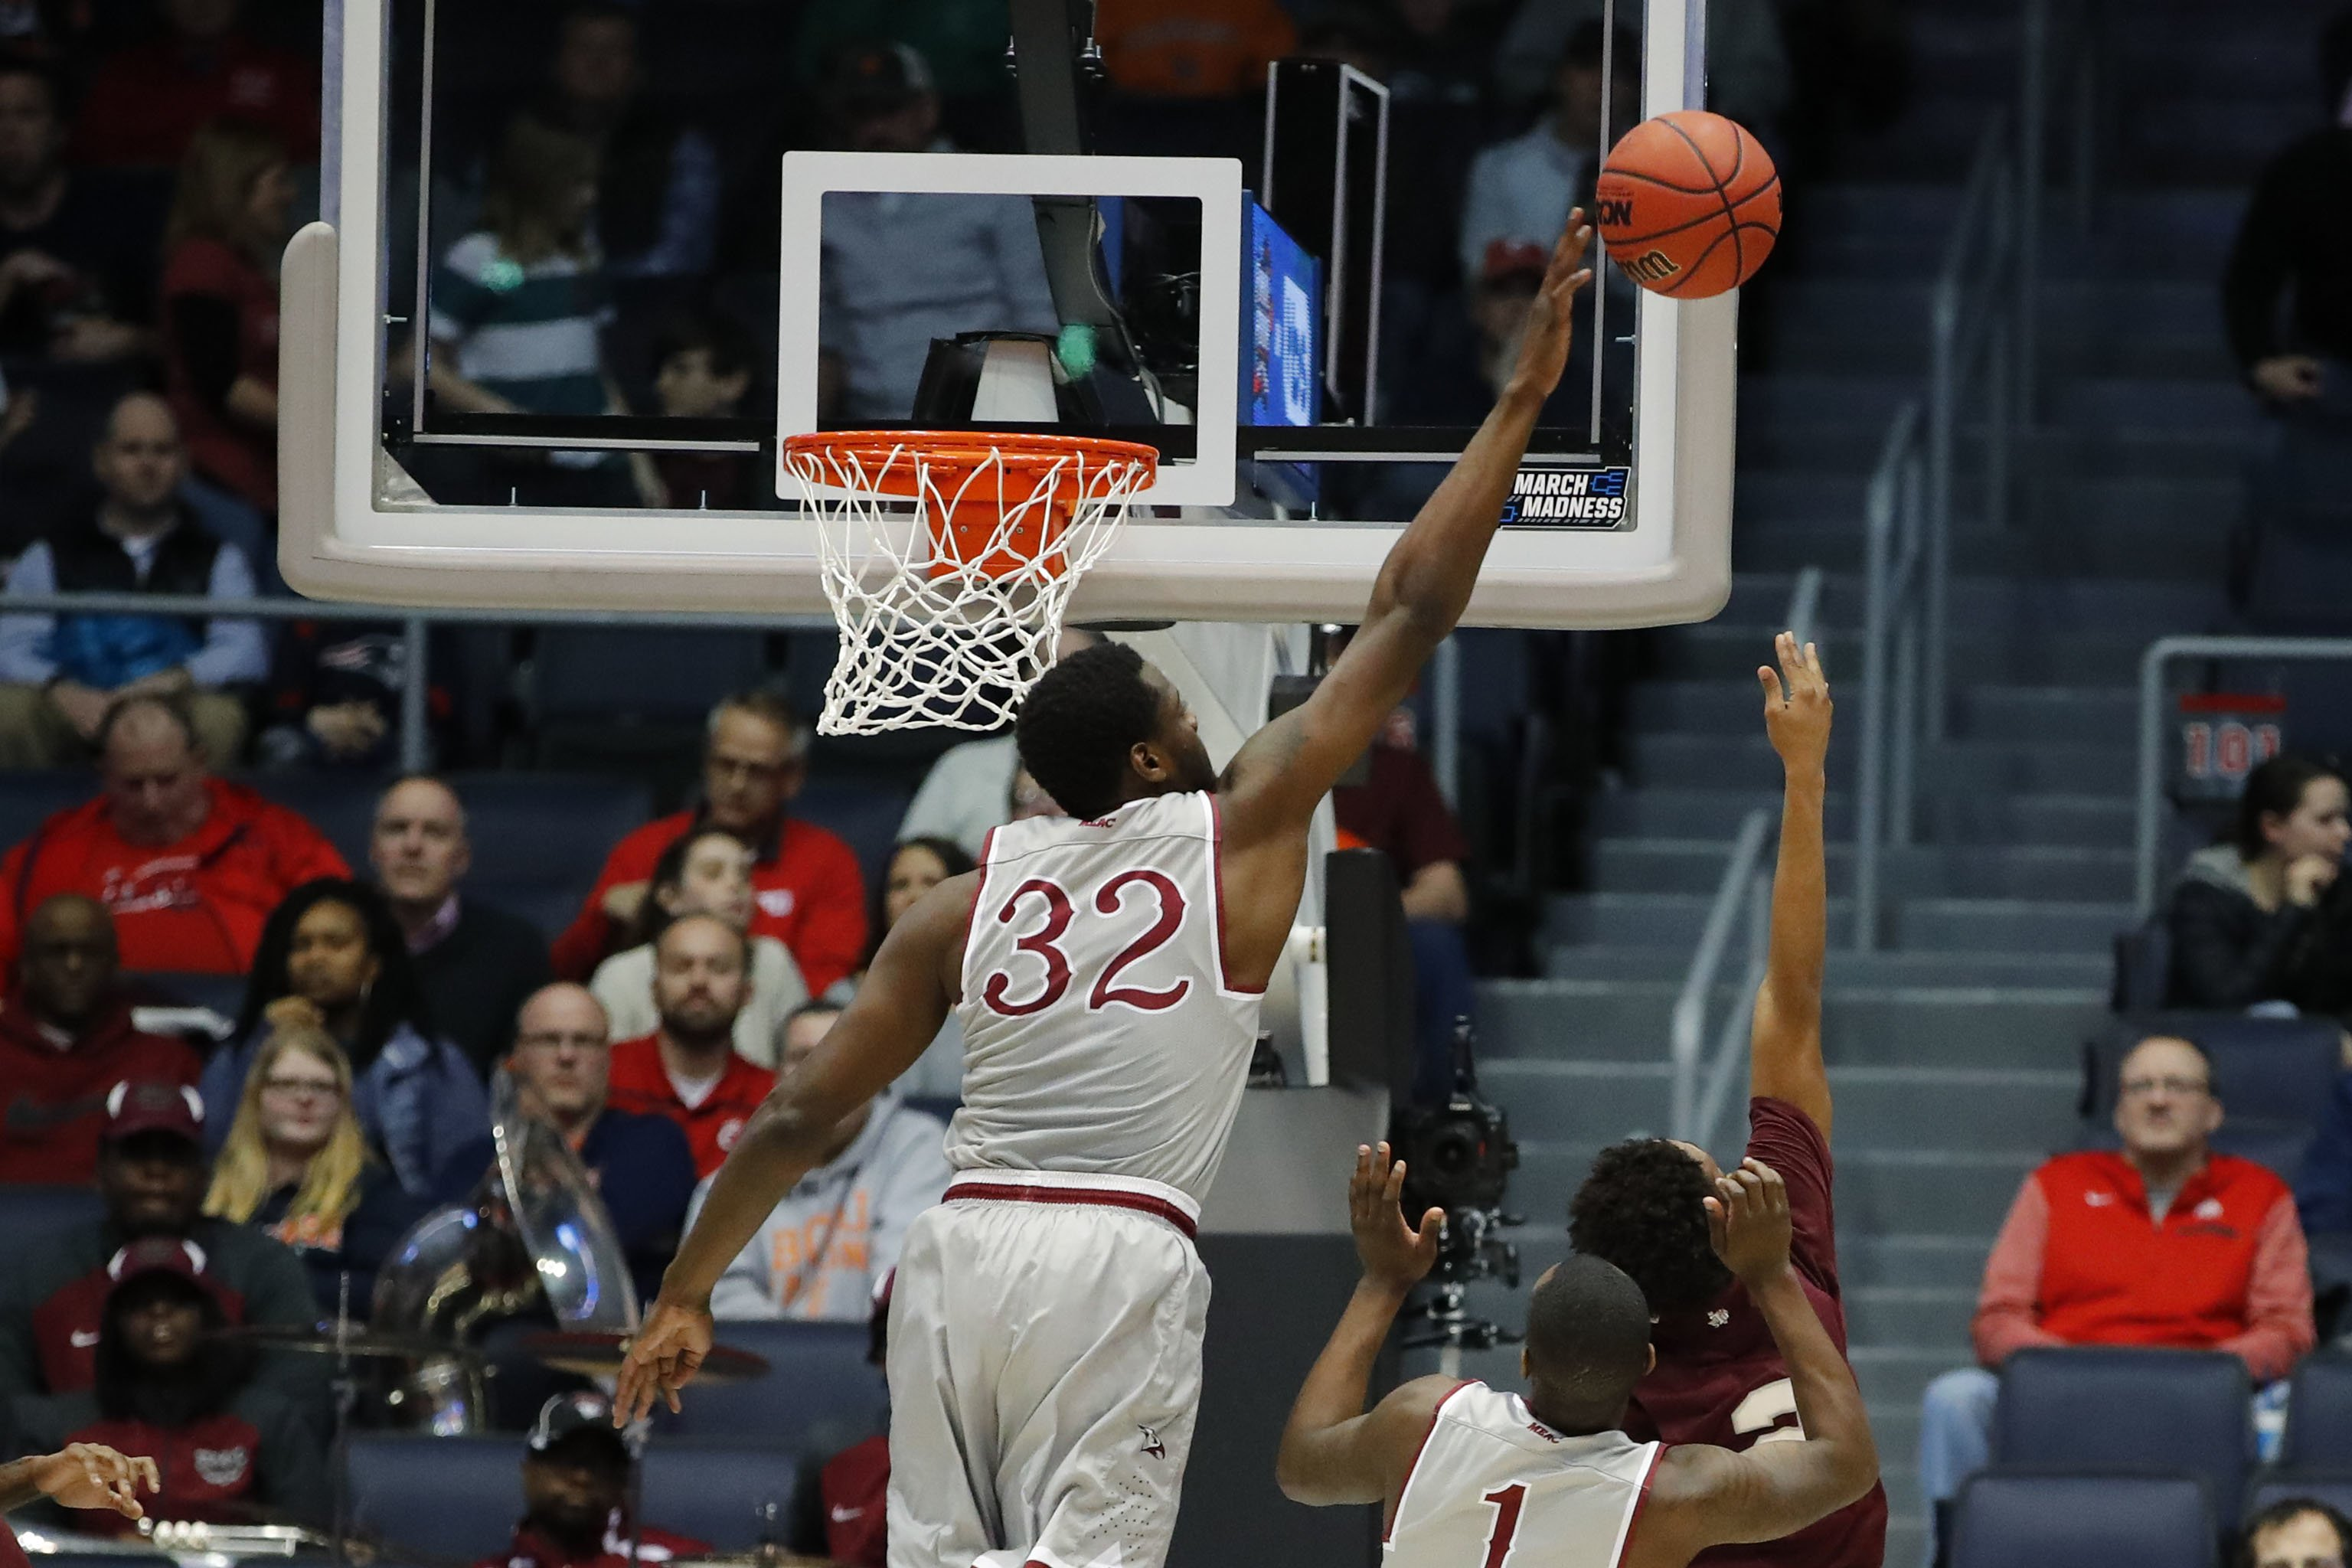 Texas Southern advances over N. Carolina Central in NCAA Tournament